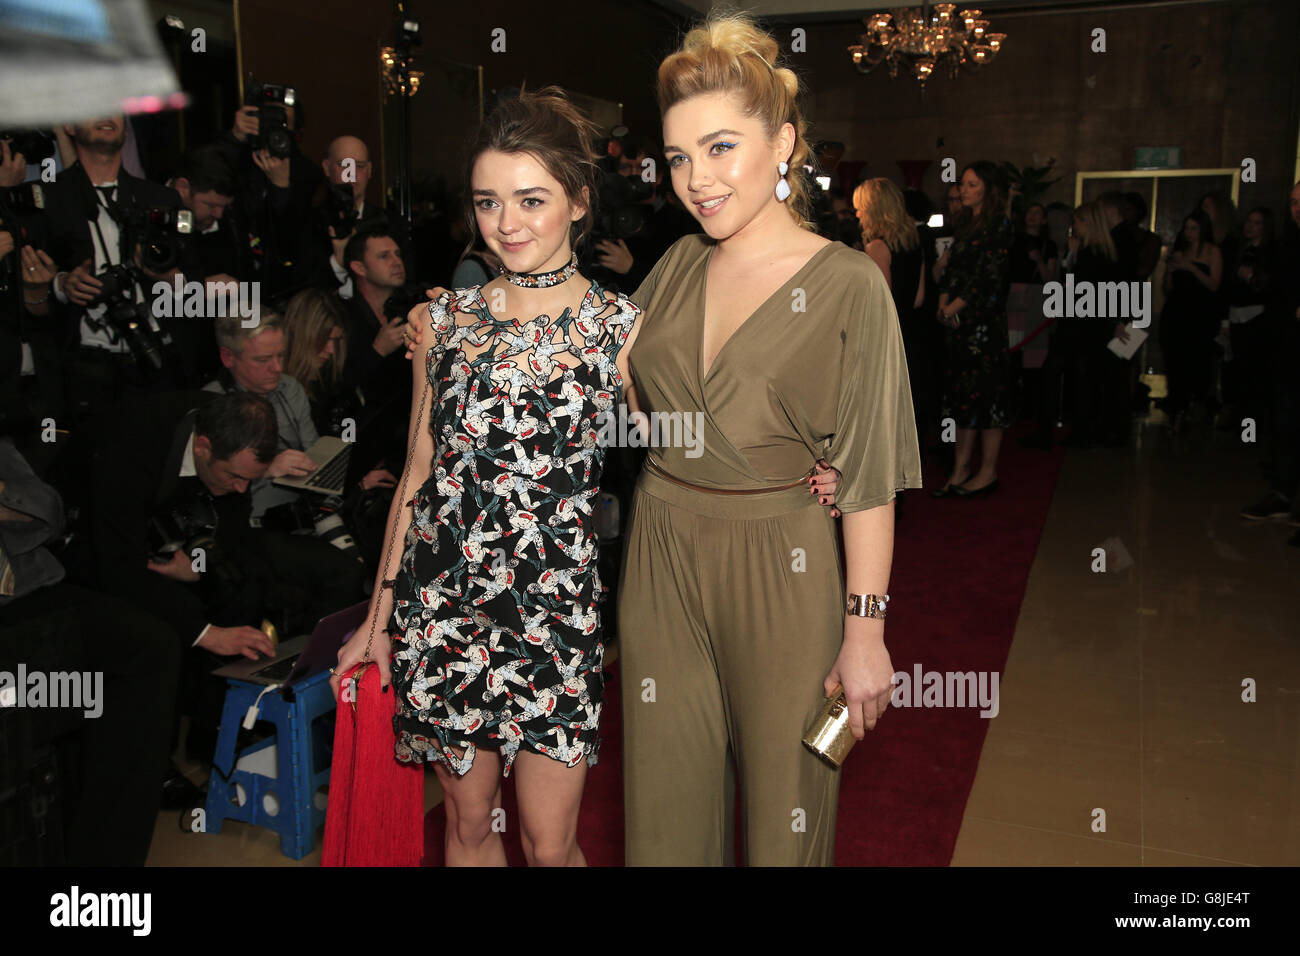 Maisie Williams and Florence Pugh attending the London Critics' Circle Film Awards at the May Fair Hotel, Central London. PRESS ASSOCIATION Photo. Picture date: Sunday 17th January, 2016. See PA story SHOWBIZ Critics. Photo credit should read: Jonathan Brady/PA Wire. Stock Photo